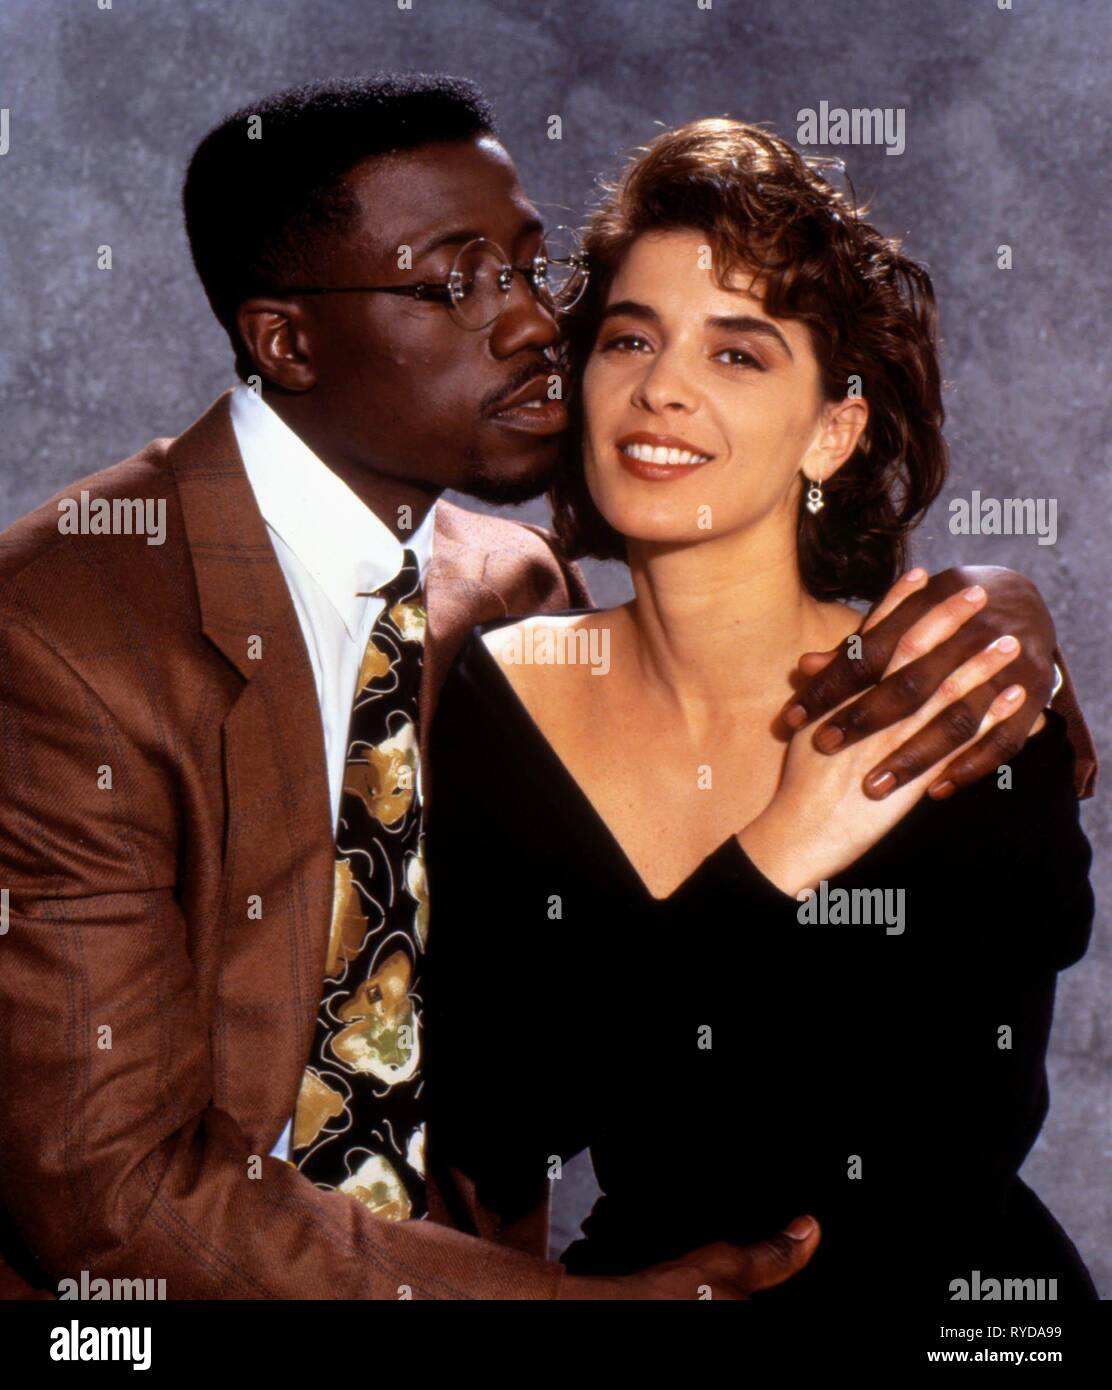 WESLEY SNIPES, ANNABELLA SCIORRA, JUNGLE FEVER, 1991 Stock Photo